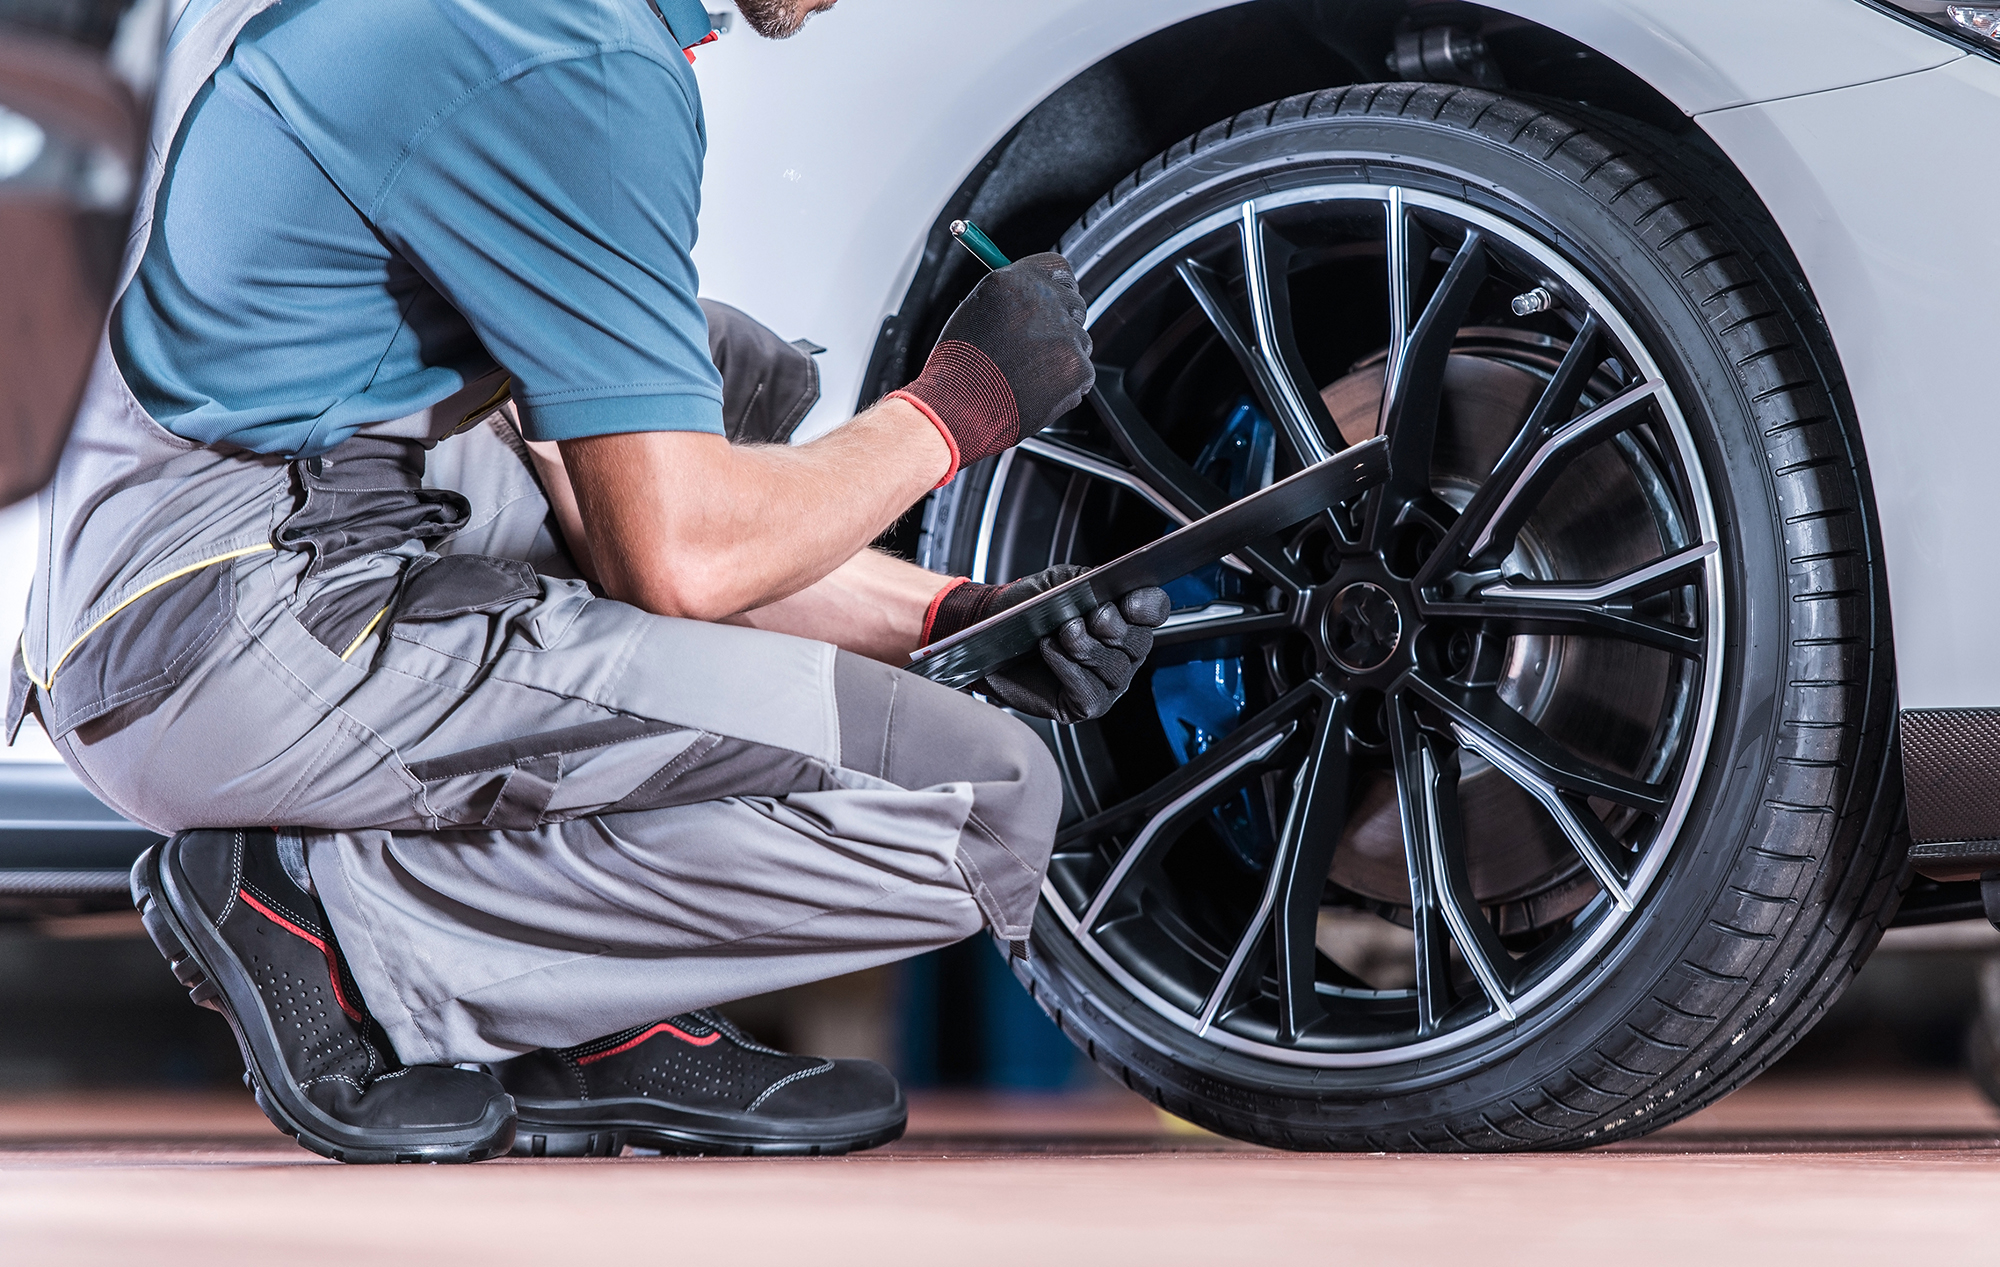 Tires and Wheels Inspection